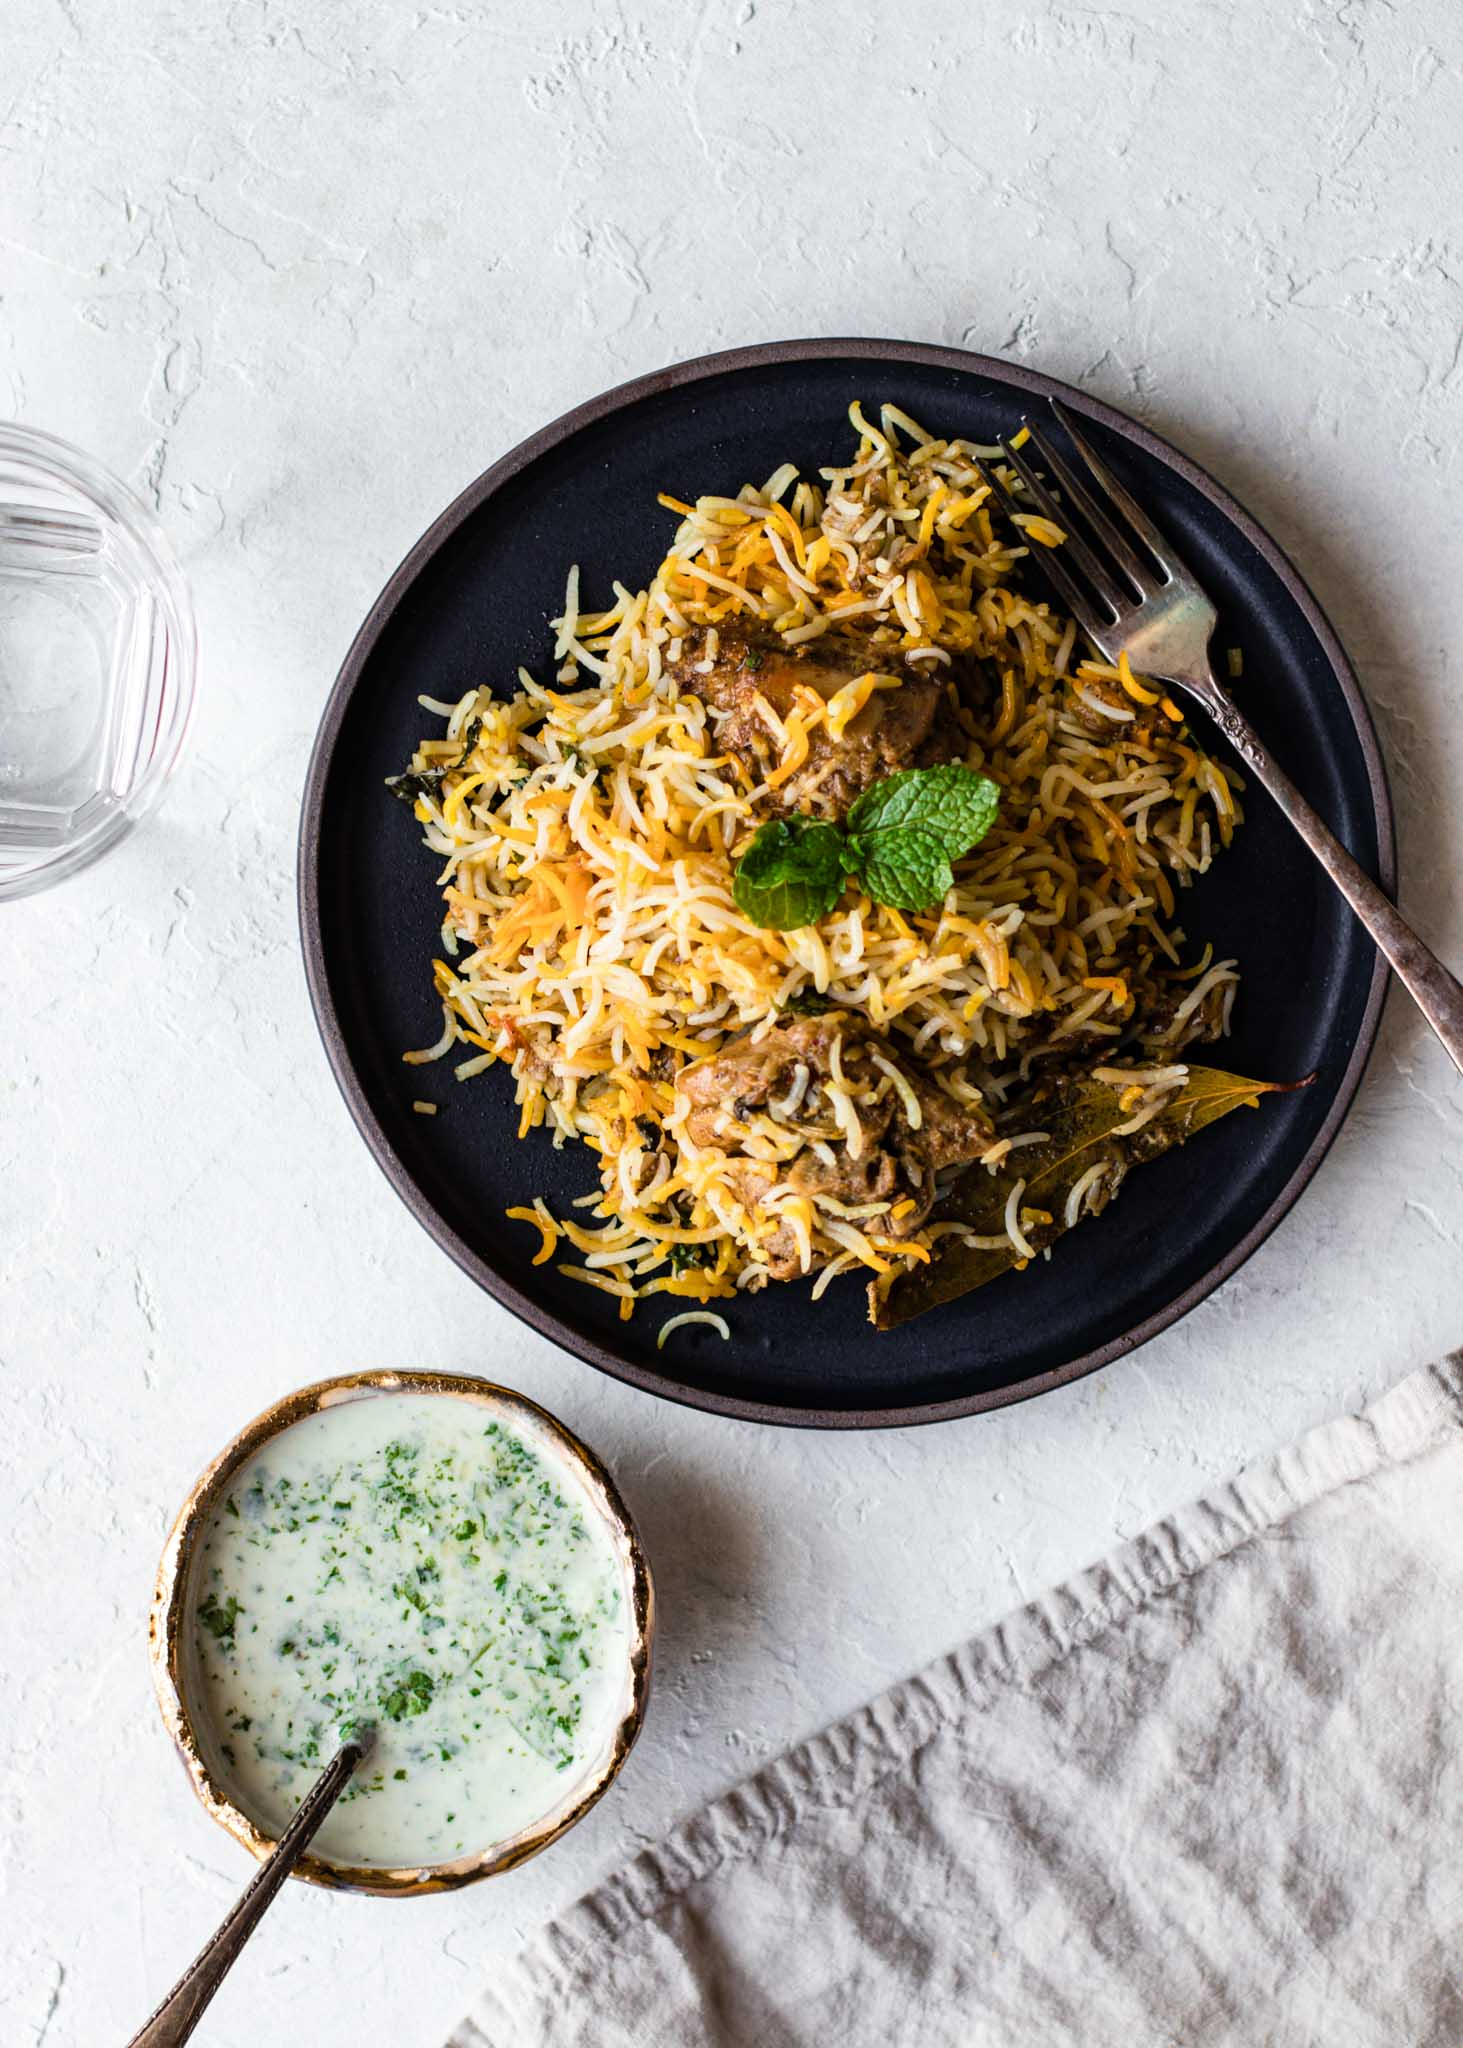 Chicken Biryani in a black plate with multi-colored rice garnished with mint and served with yogurt raita on the side